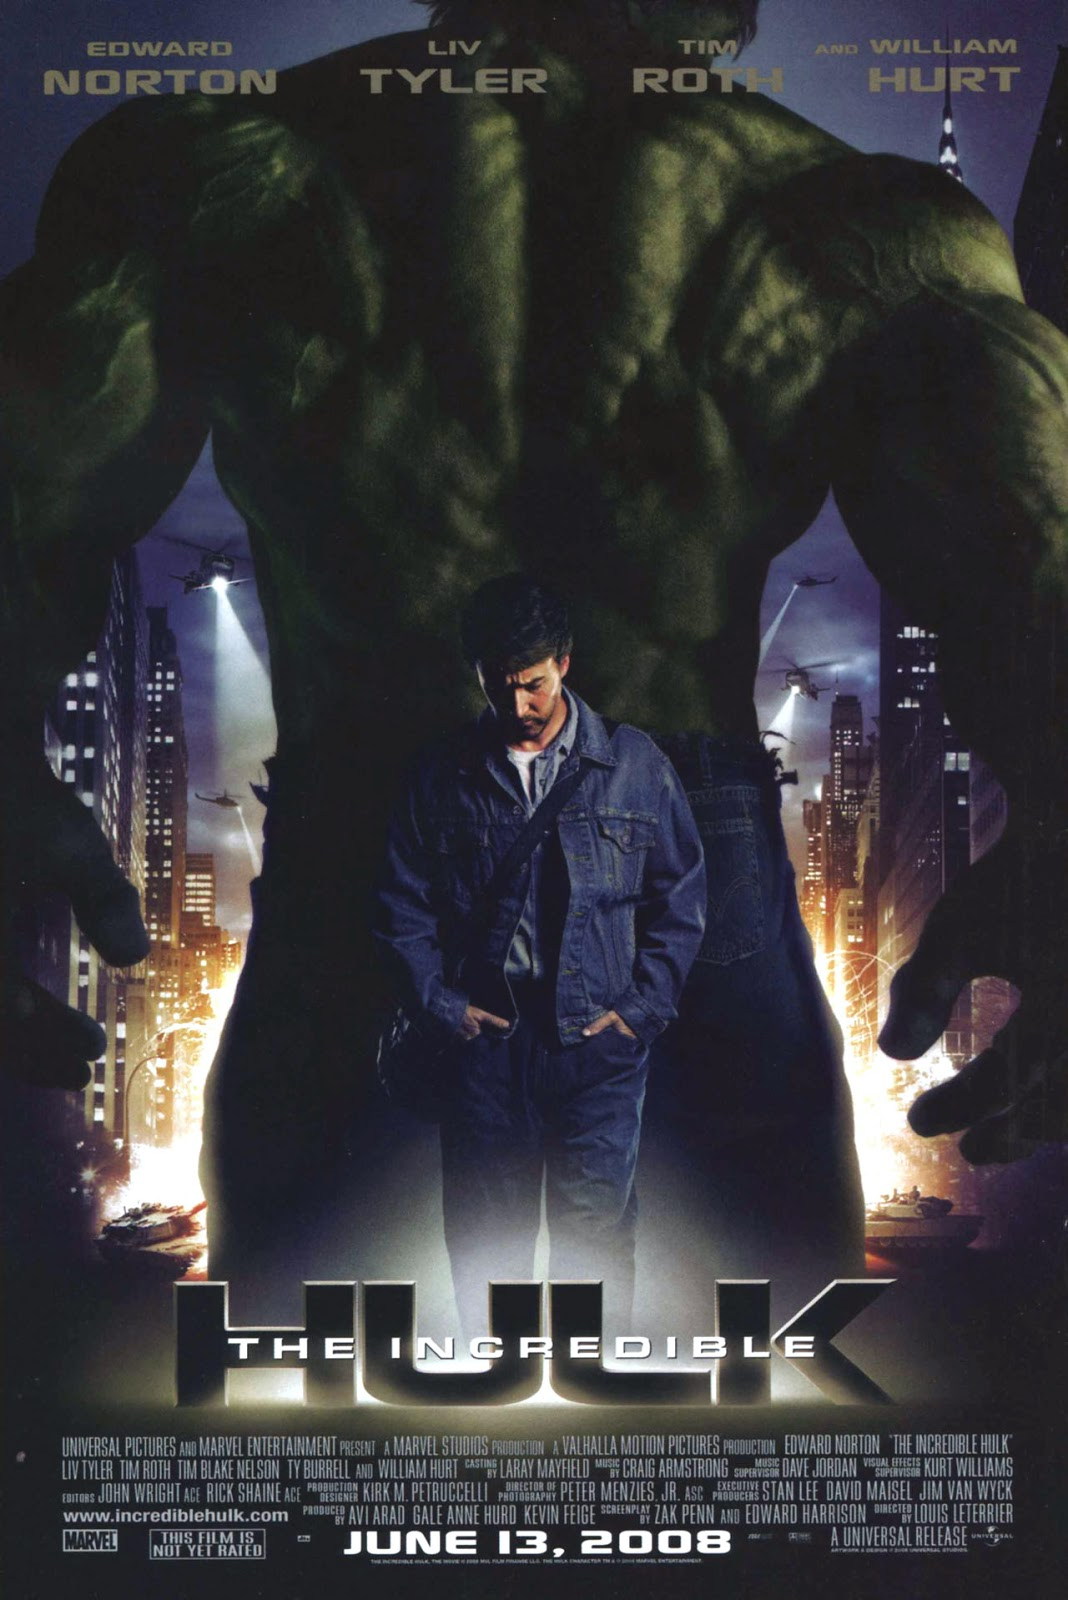 http://1.bp.blogspot.com/-OTNCrsWcw1U/UPxWFtNr_3I/AAAAAAAAPOw/iMJFvMowXhQ/s1600/the-incredible-hulk-movie-poster-2008.jpg